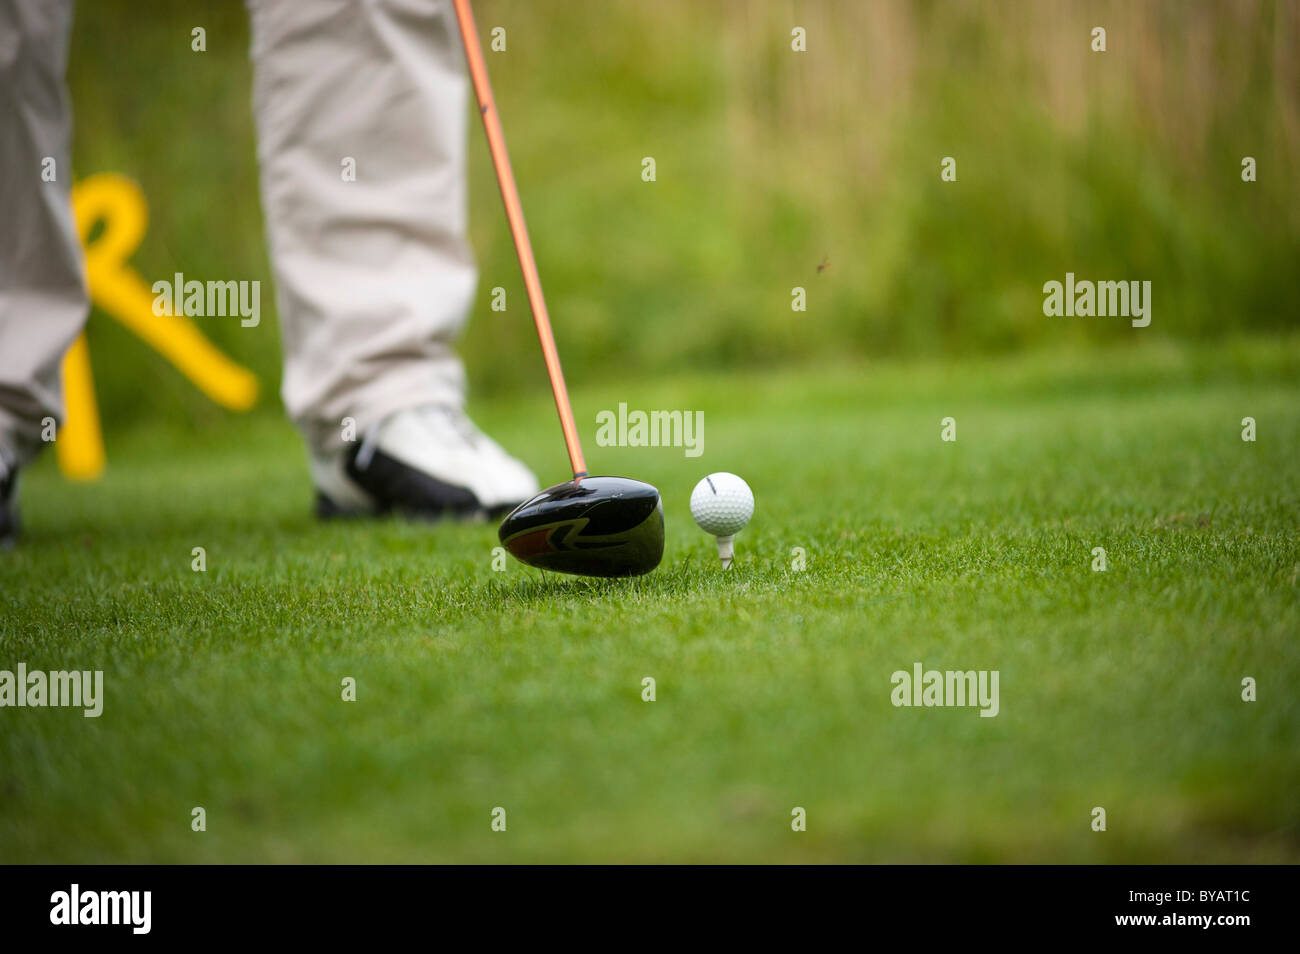 Golfer using a driver, just before hitting the ball - Stock Image